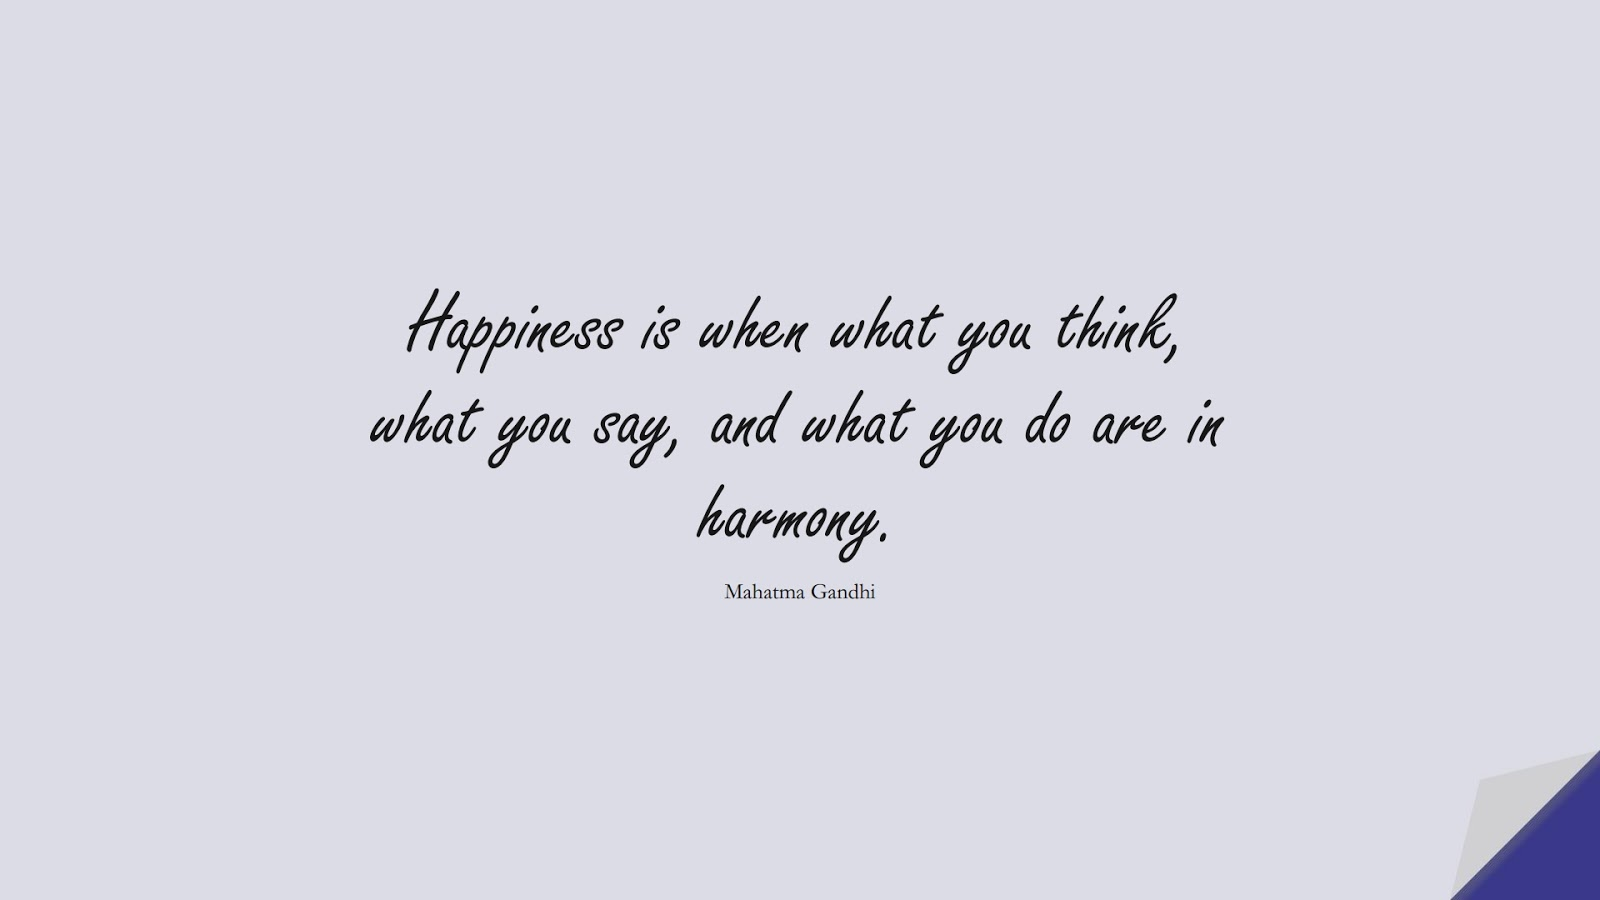 Happiness is when what you think, what you say, and what you do are in harmony. (Mahatma Gandhi);  #HappinessQuotes